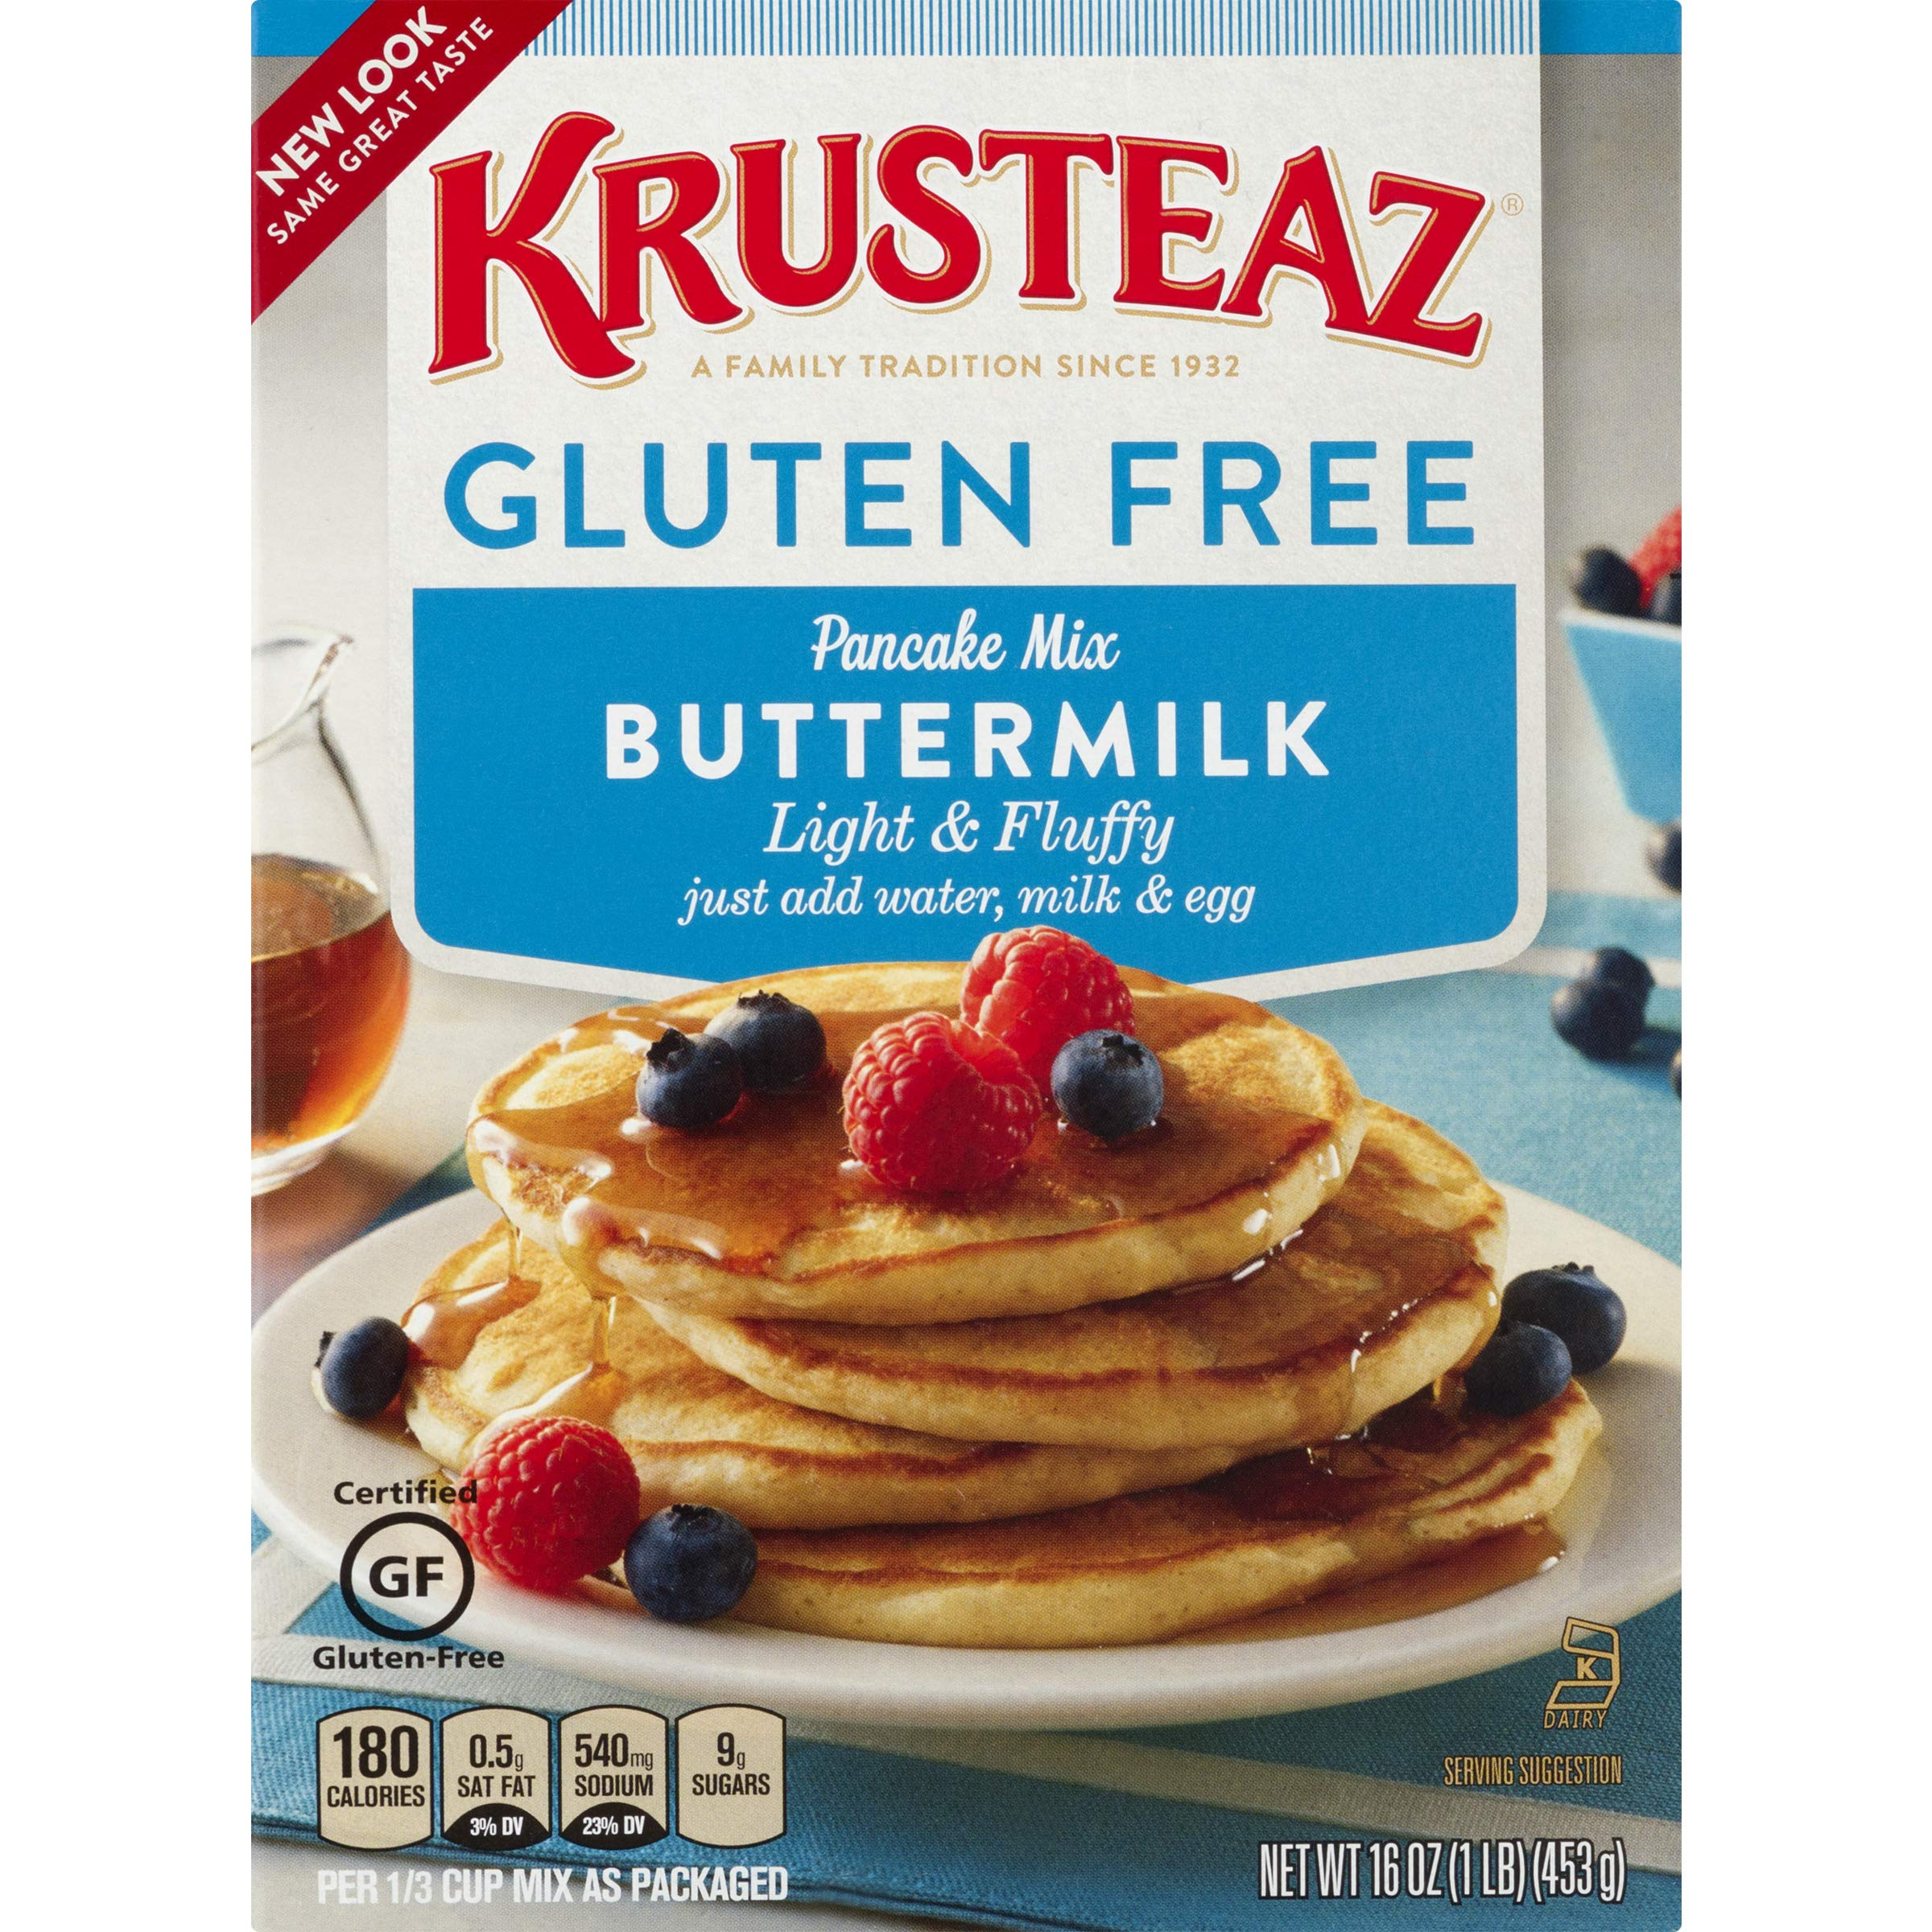 Krusteaz Gluten Free Buttermilk Pancake Mix, 16-Ounce Boxes (Pack of 8) by Krusteaz